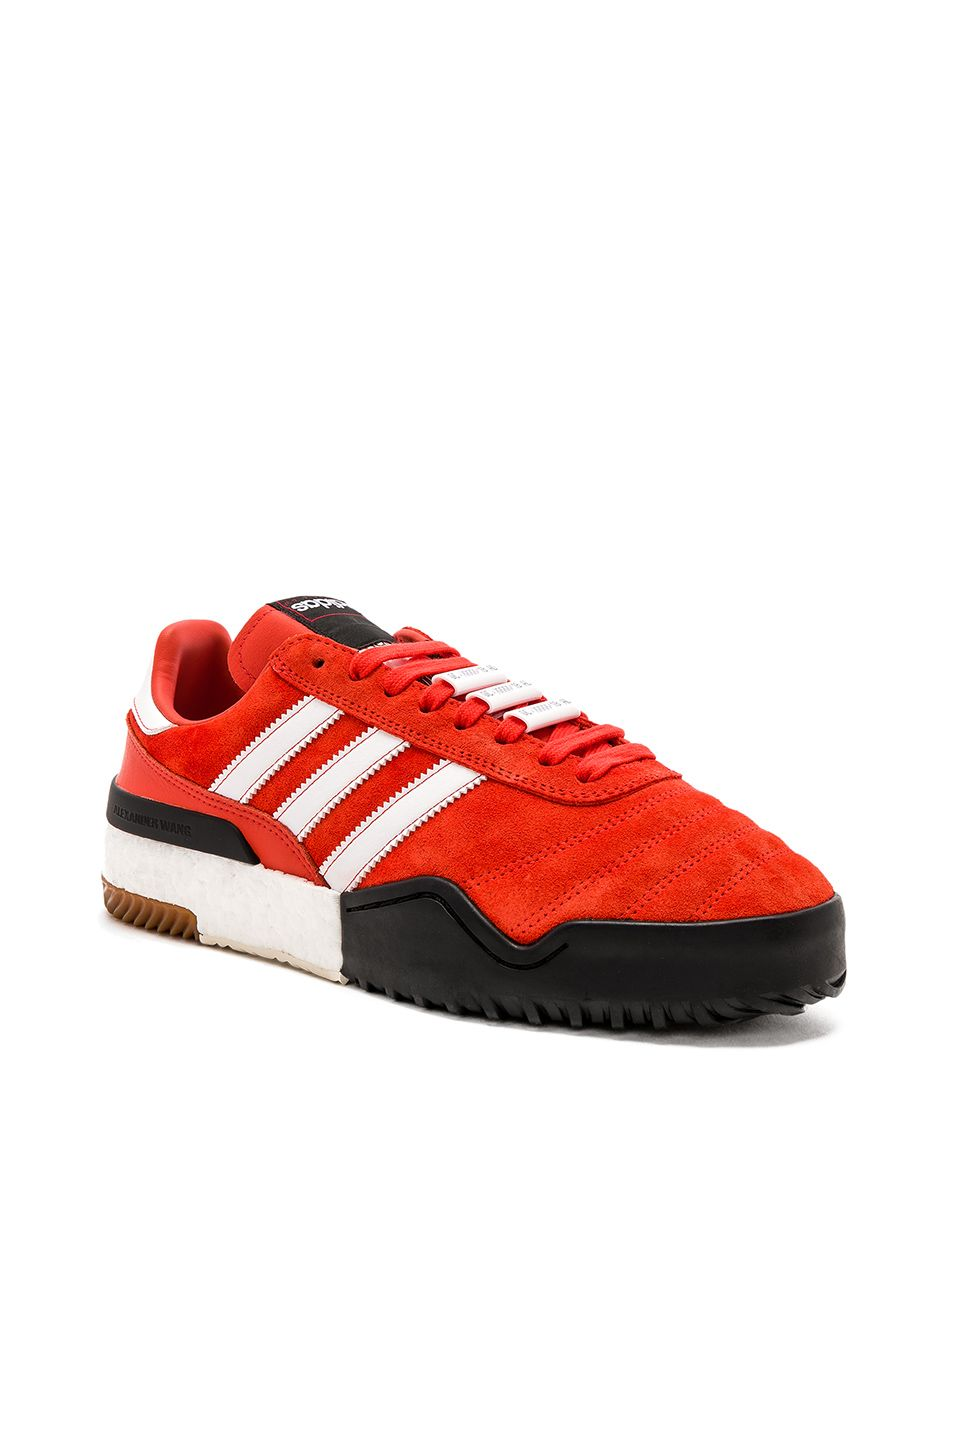 adidas Basketball Soccer Sneakers in Borang Core Factory Price Cheap Comfortable Factory Sale Discount LVK2q3J